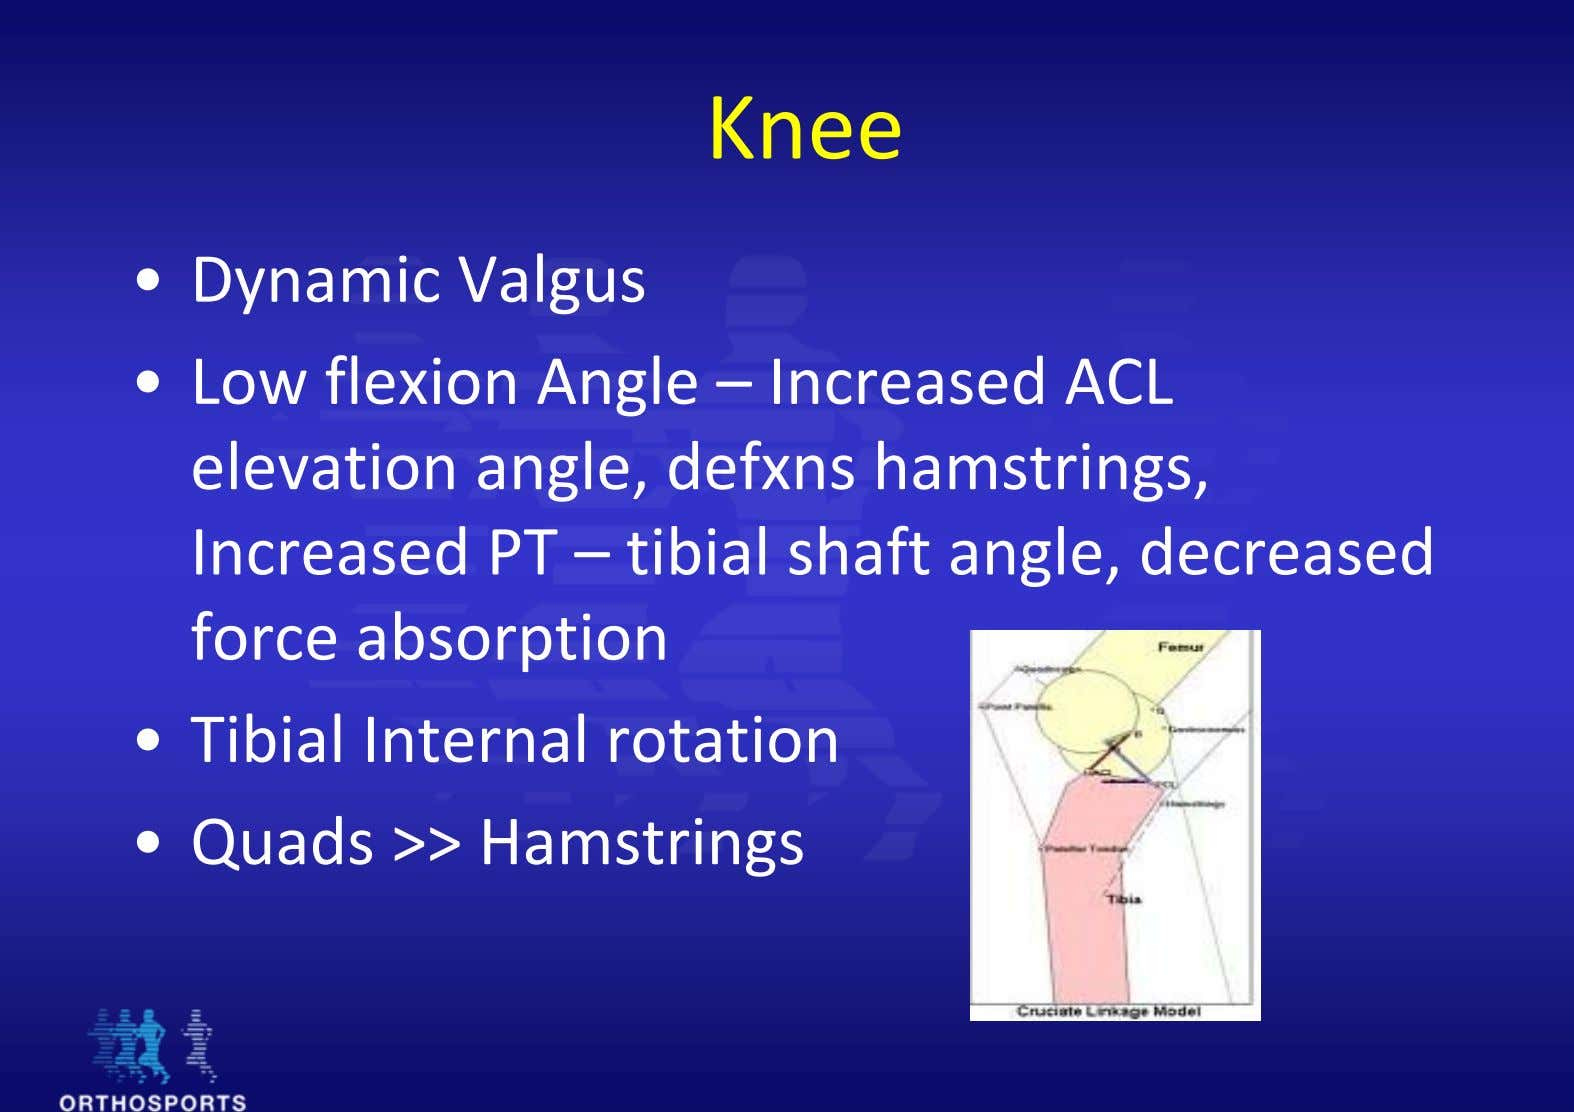 Knee • Dynamic Valgus • Low flexion Angle – Increase d ACL elevation angle, defxns